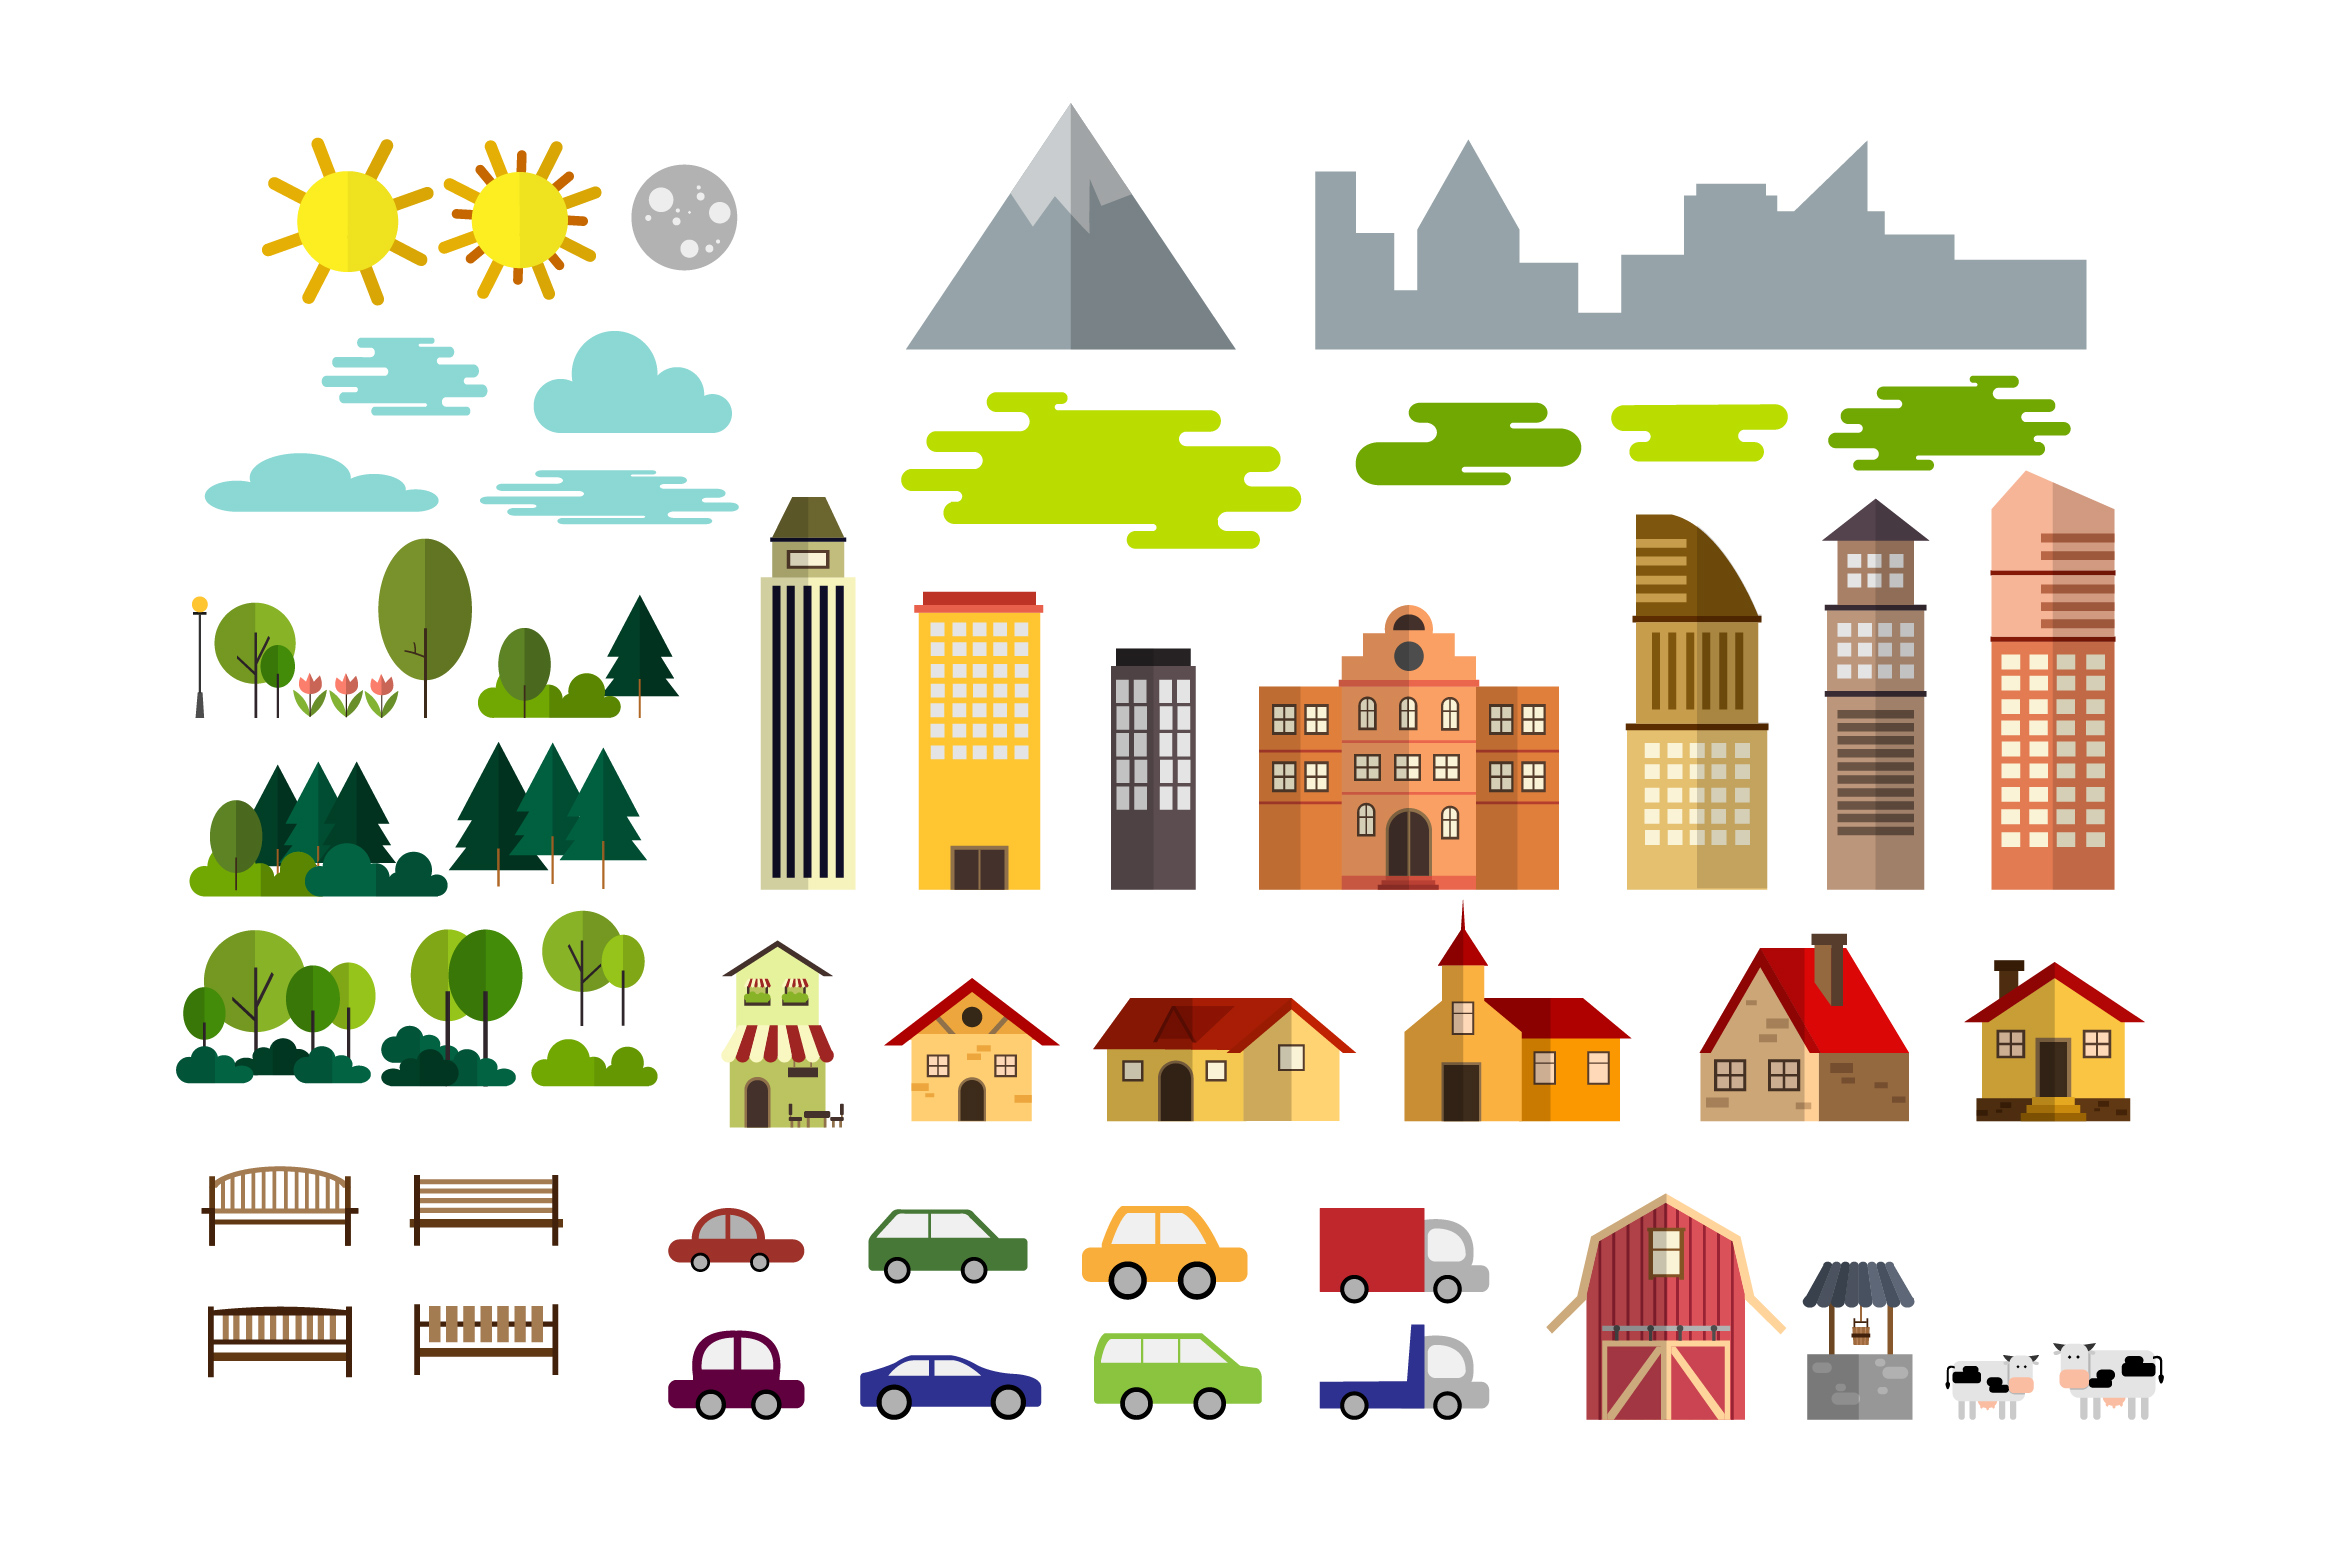 Urban & Village Landscape Set Graphic Illustrations By storictype